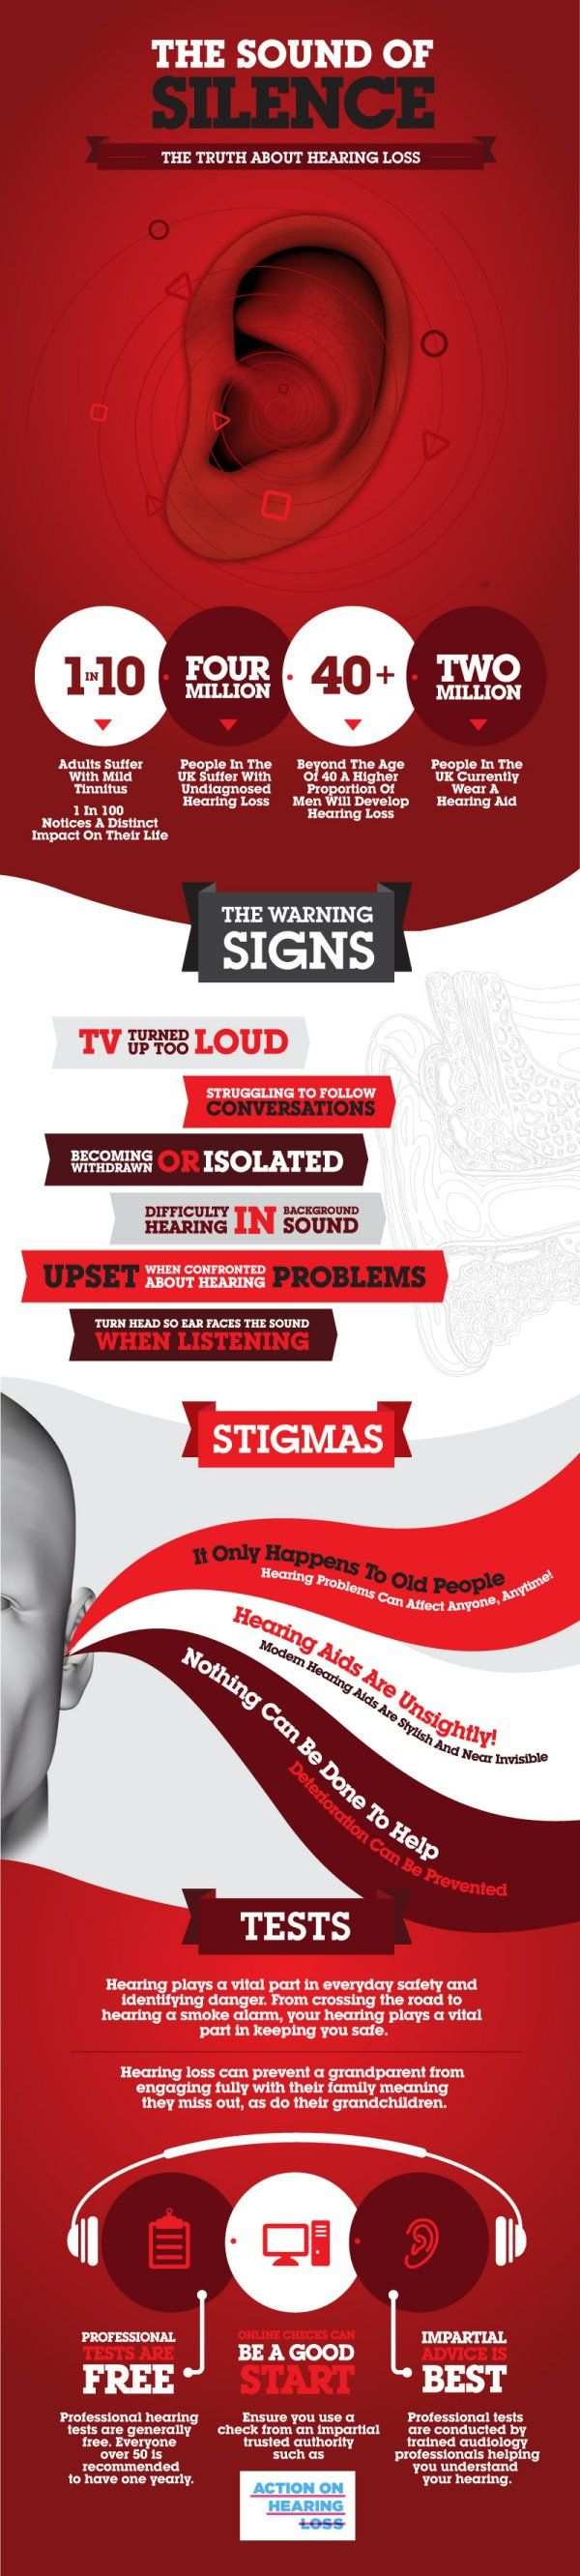 56 best Audiology and Hearing images on Pinterest | Hearing aids ...